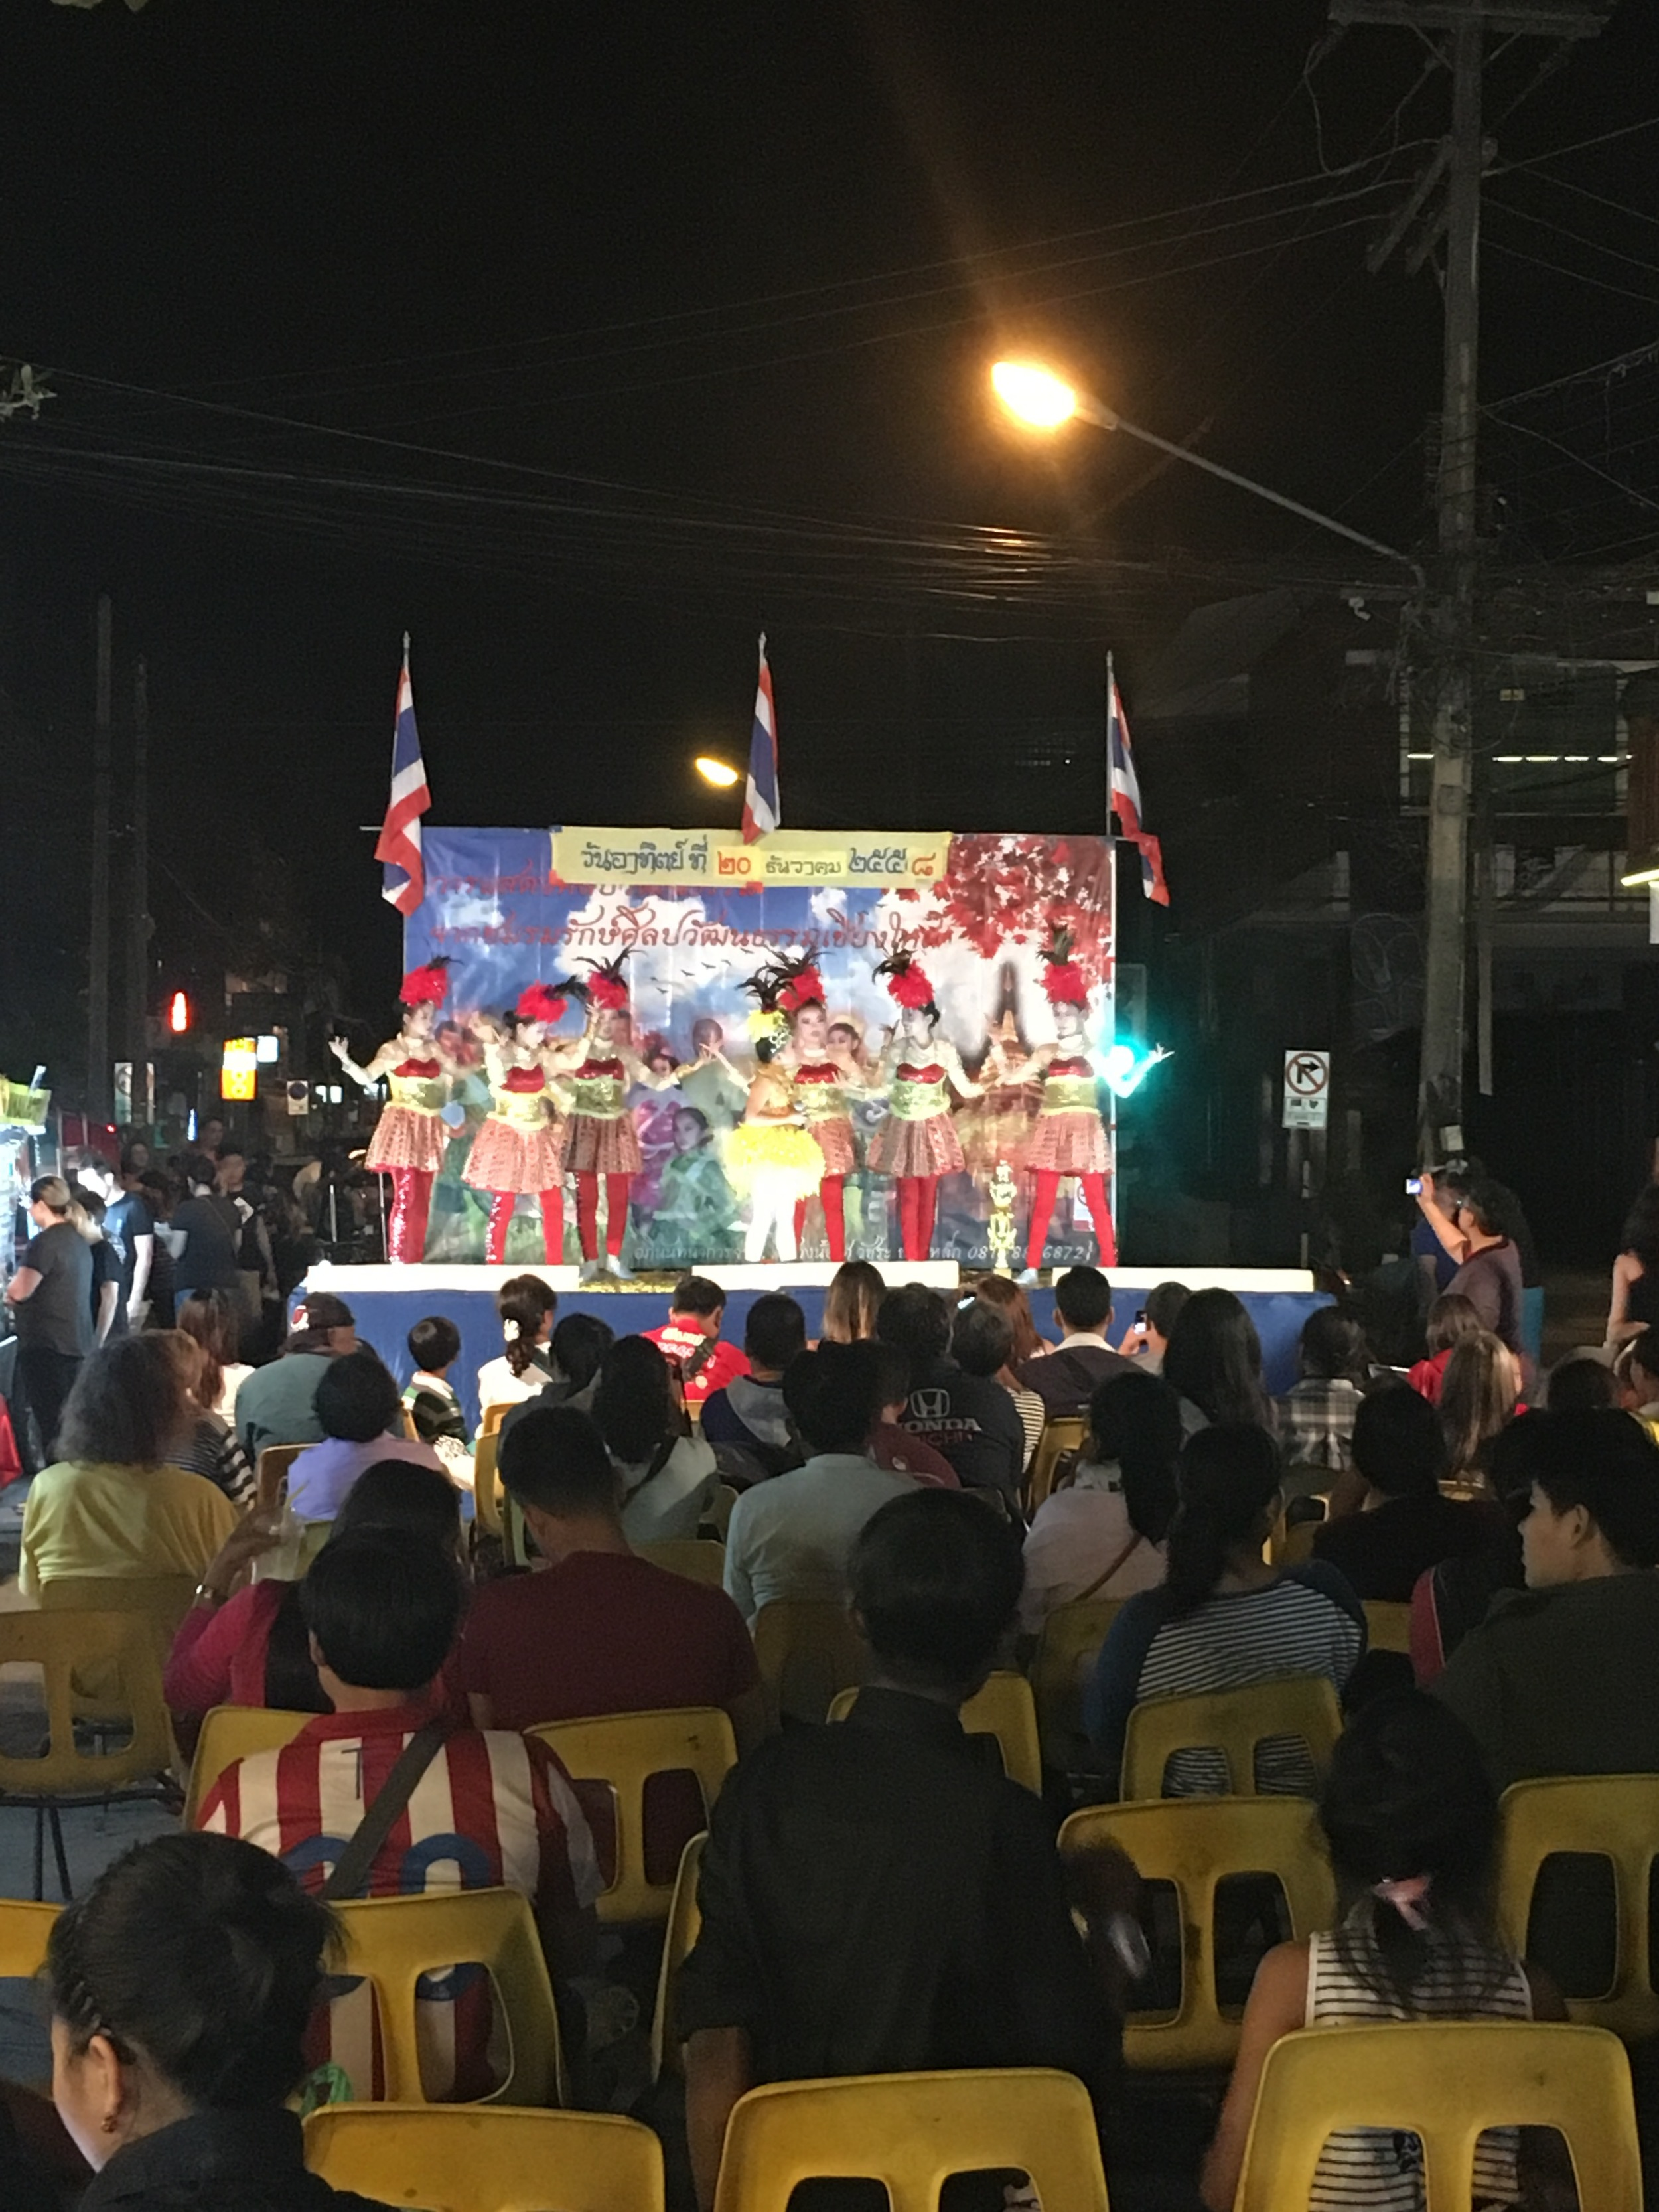 Night market pageant like kids show